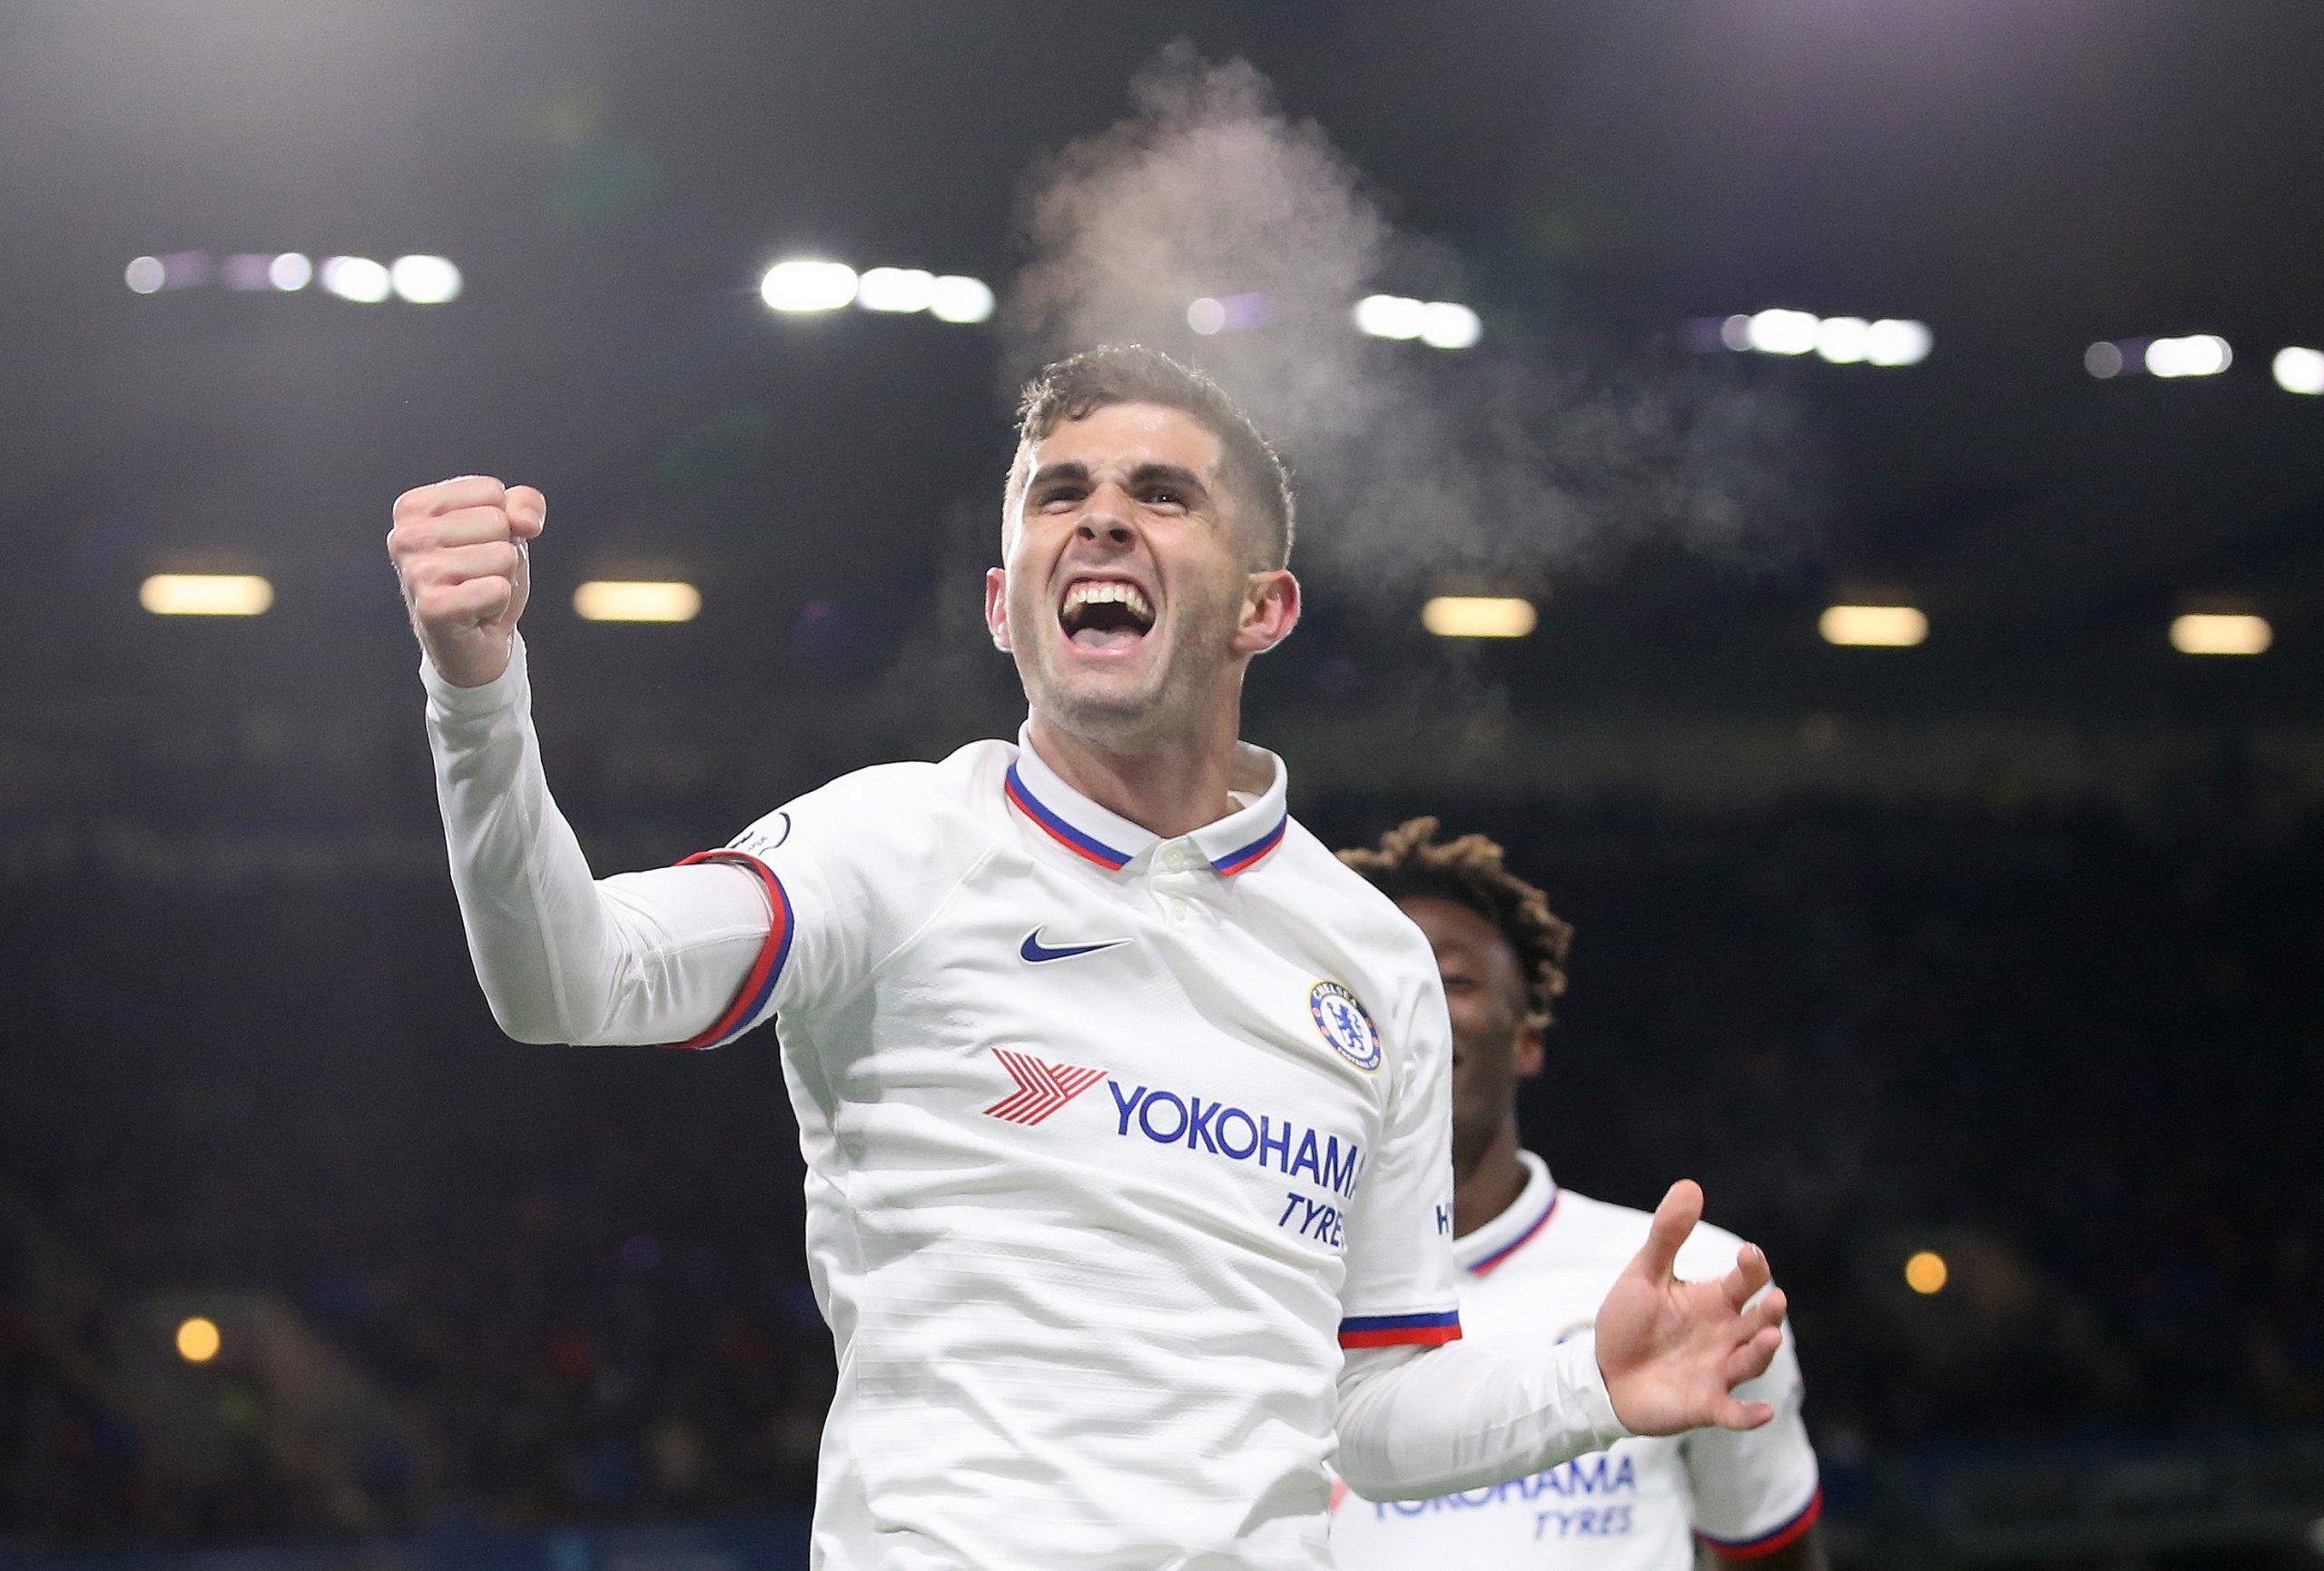 Alexi Lalas thinks Christian Pulisic is too good for Chelsea. (GETTY Images)